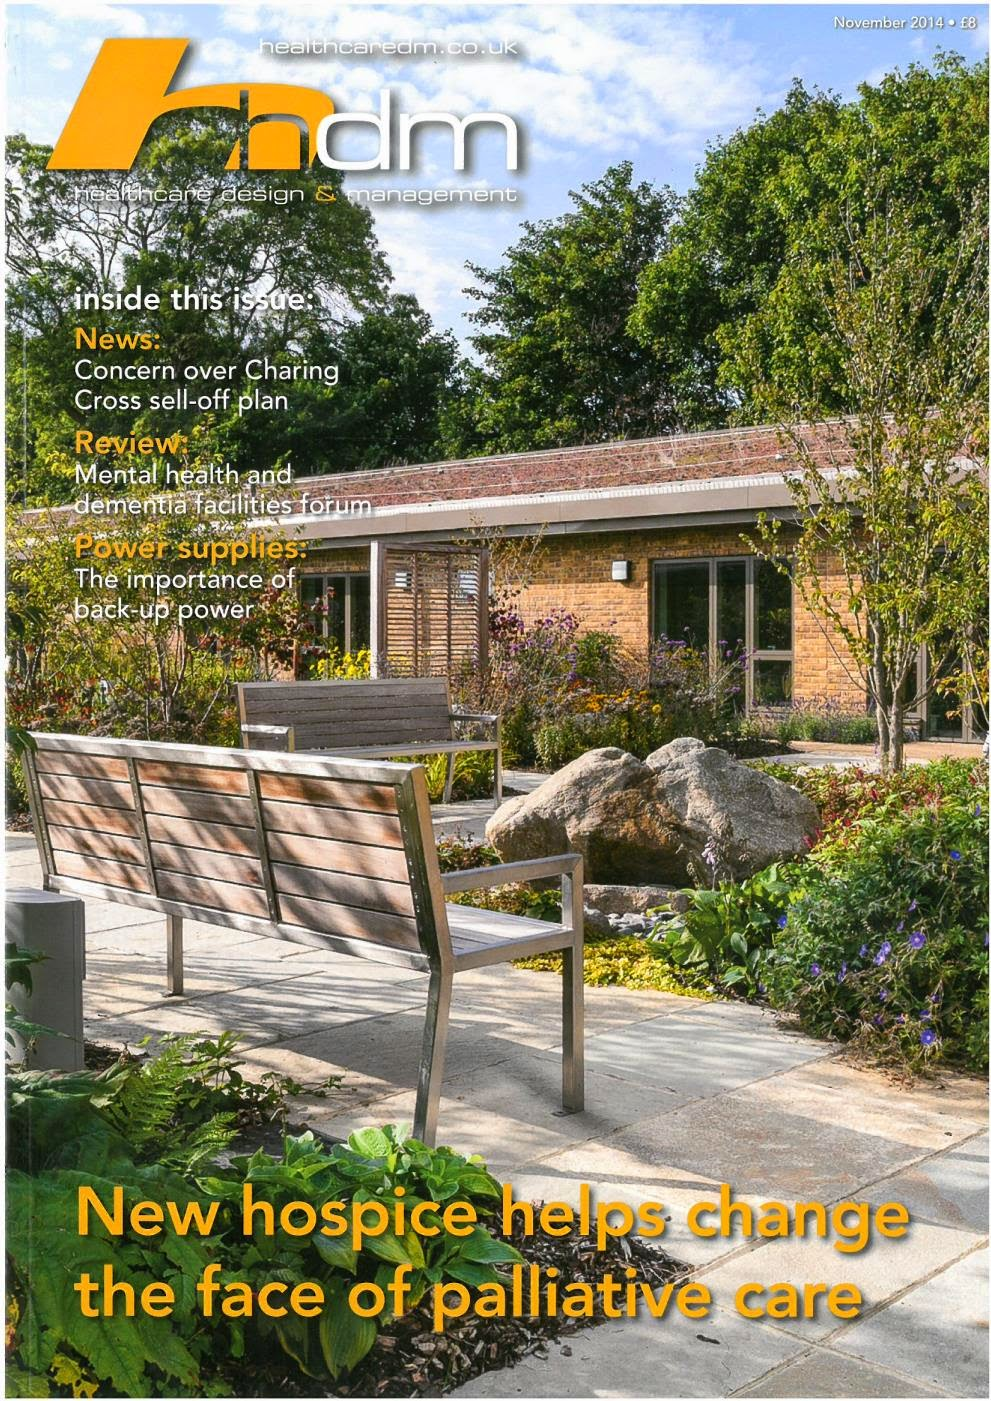 Healthcare Design & Management Features St Wilfrid's Hospice